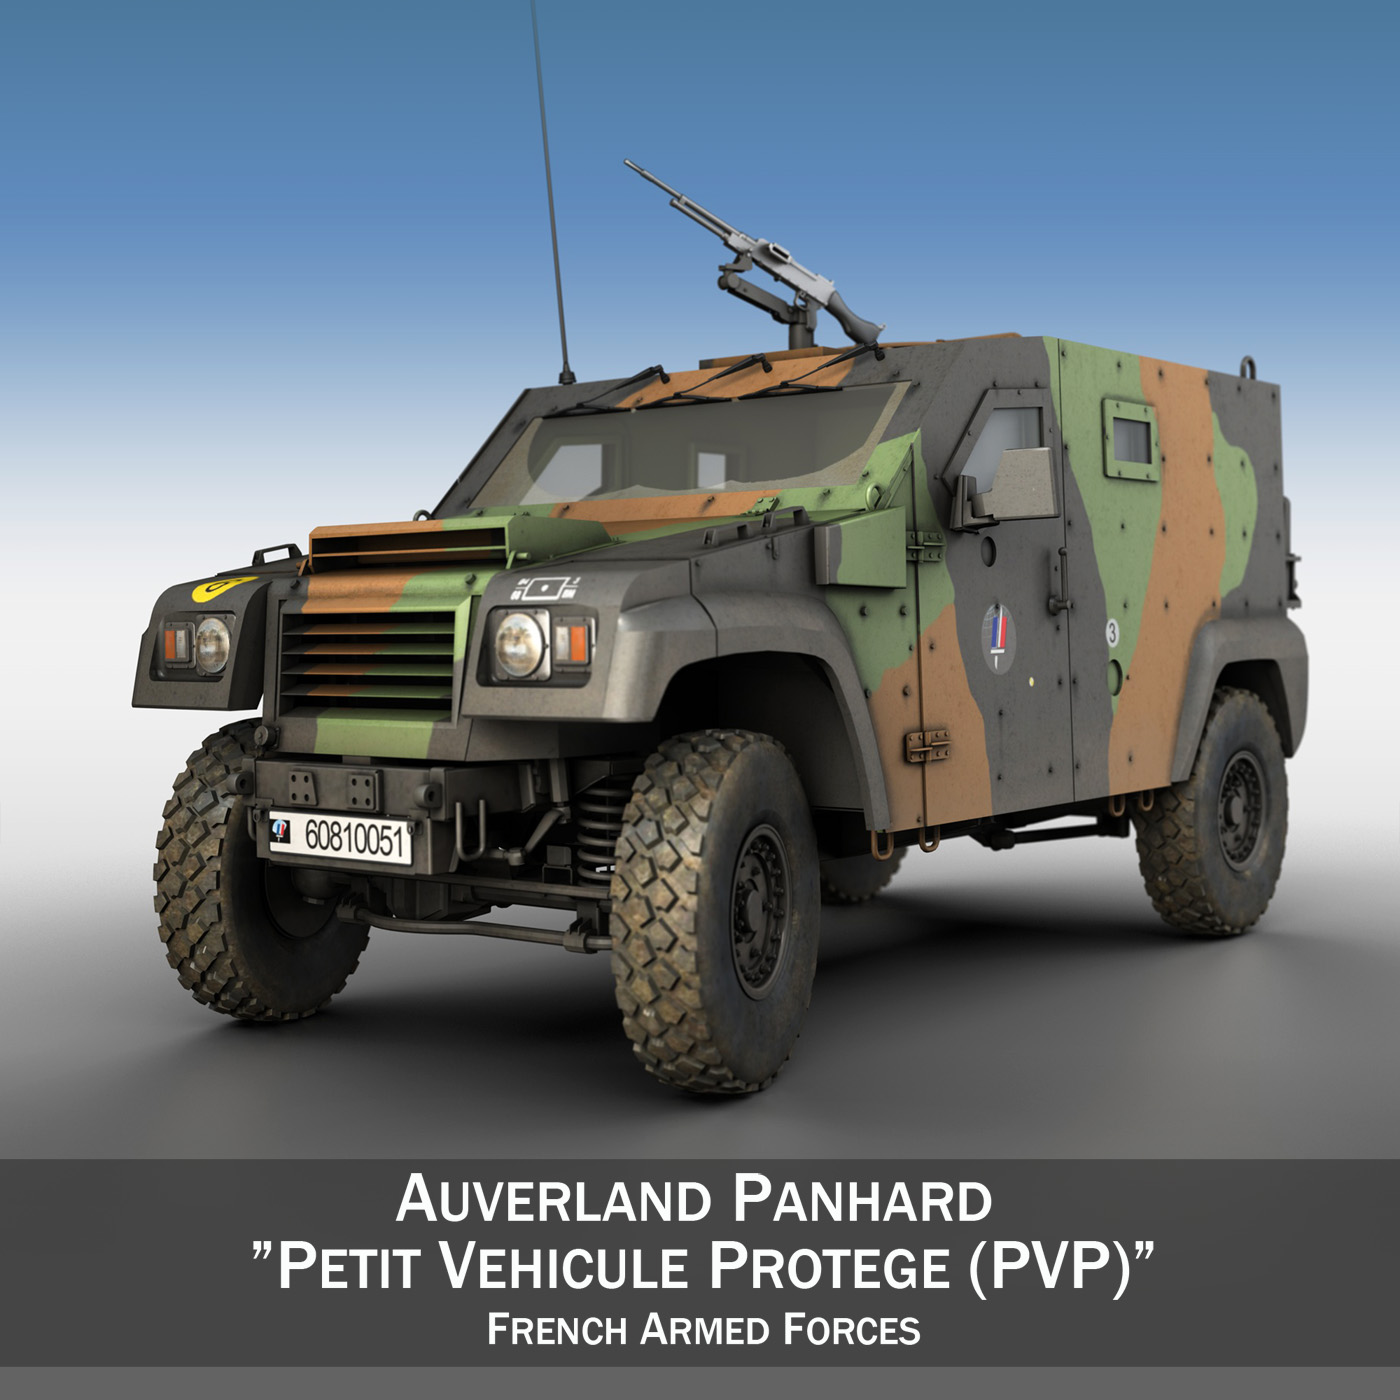 auverland panhard pvp - french army 3d modelo 3ds fbx c4d lwo obj 190089